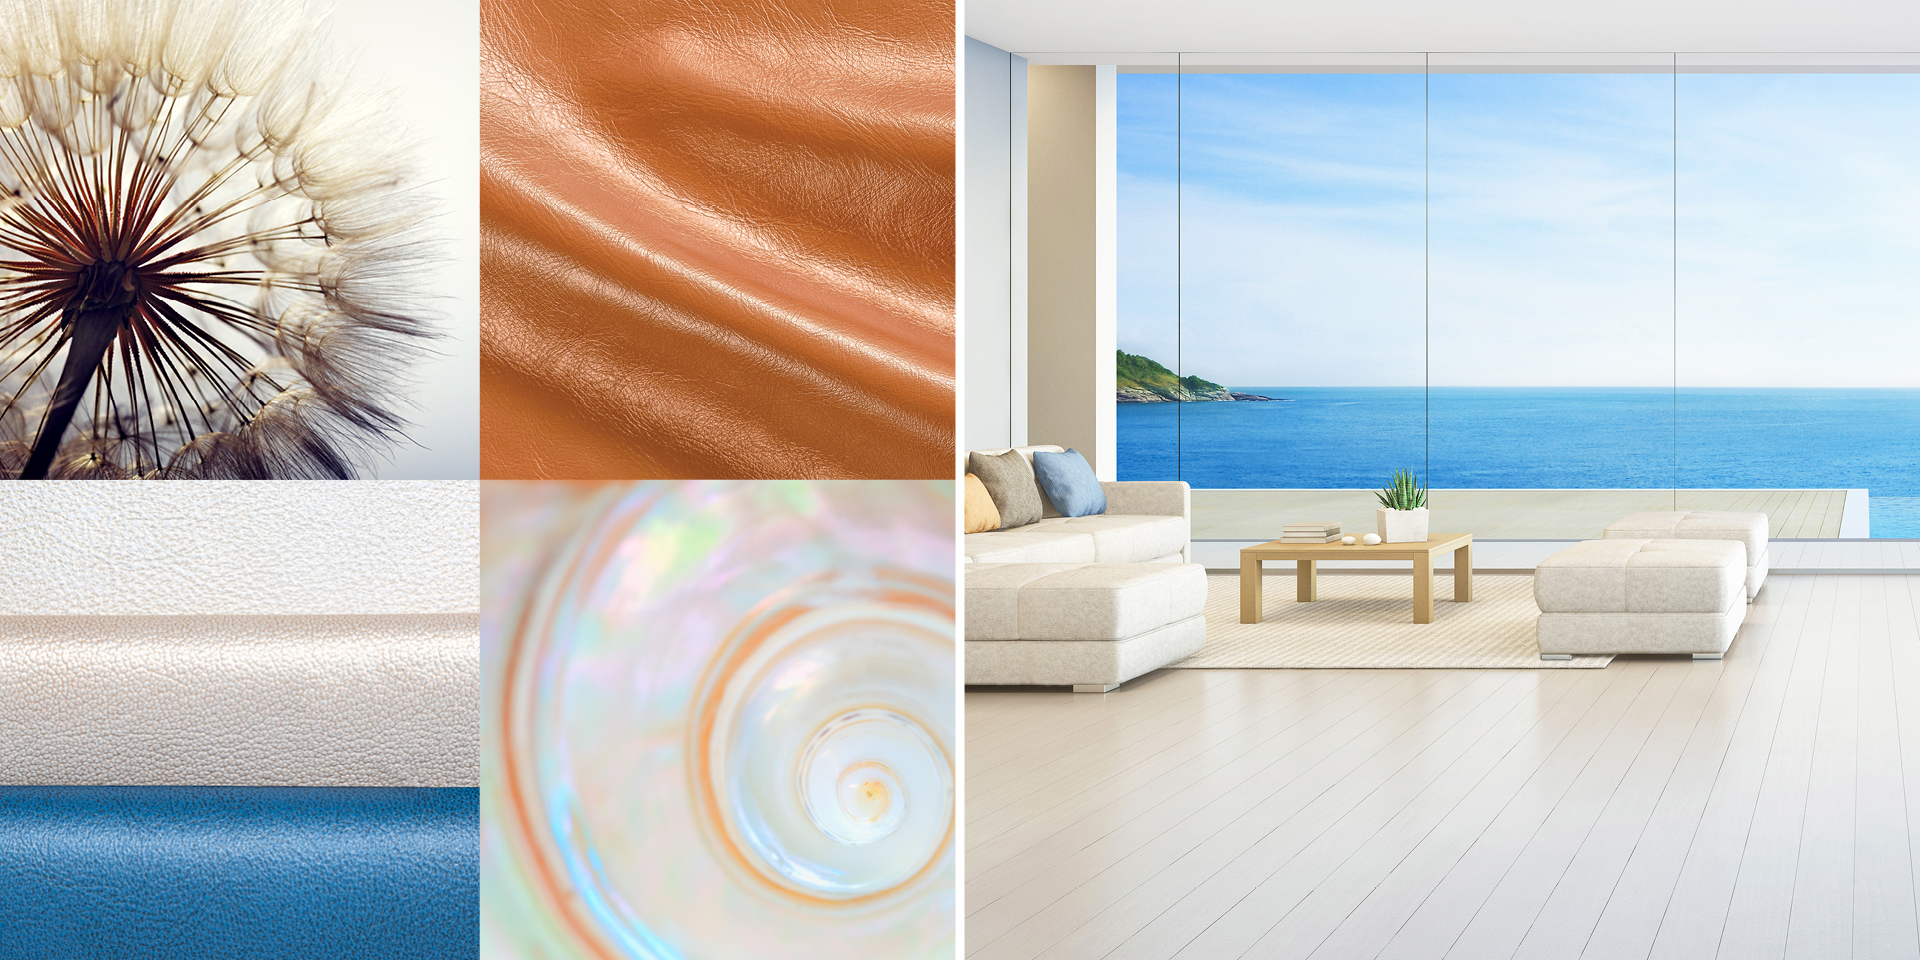 photo collage of seaside home and seashells